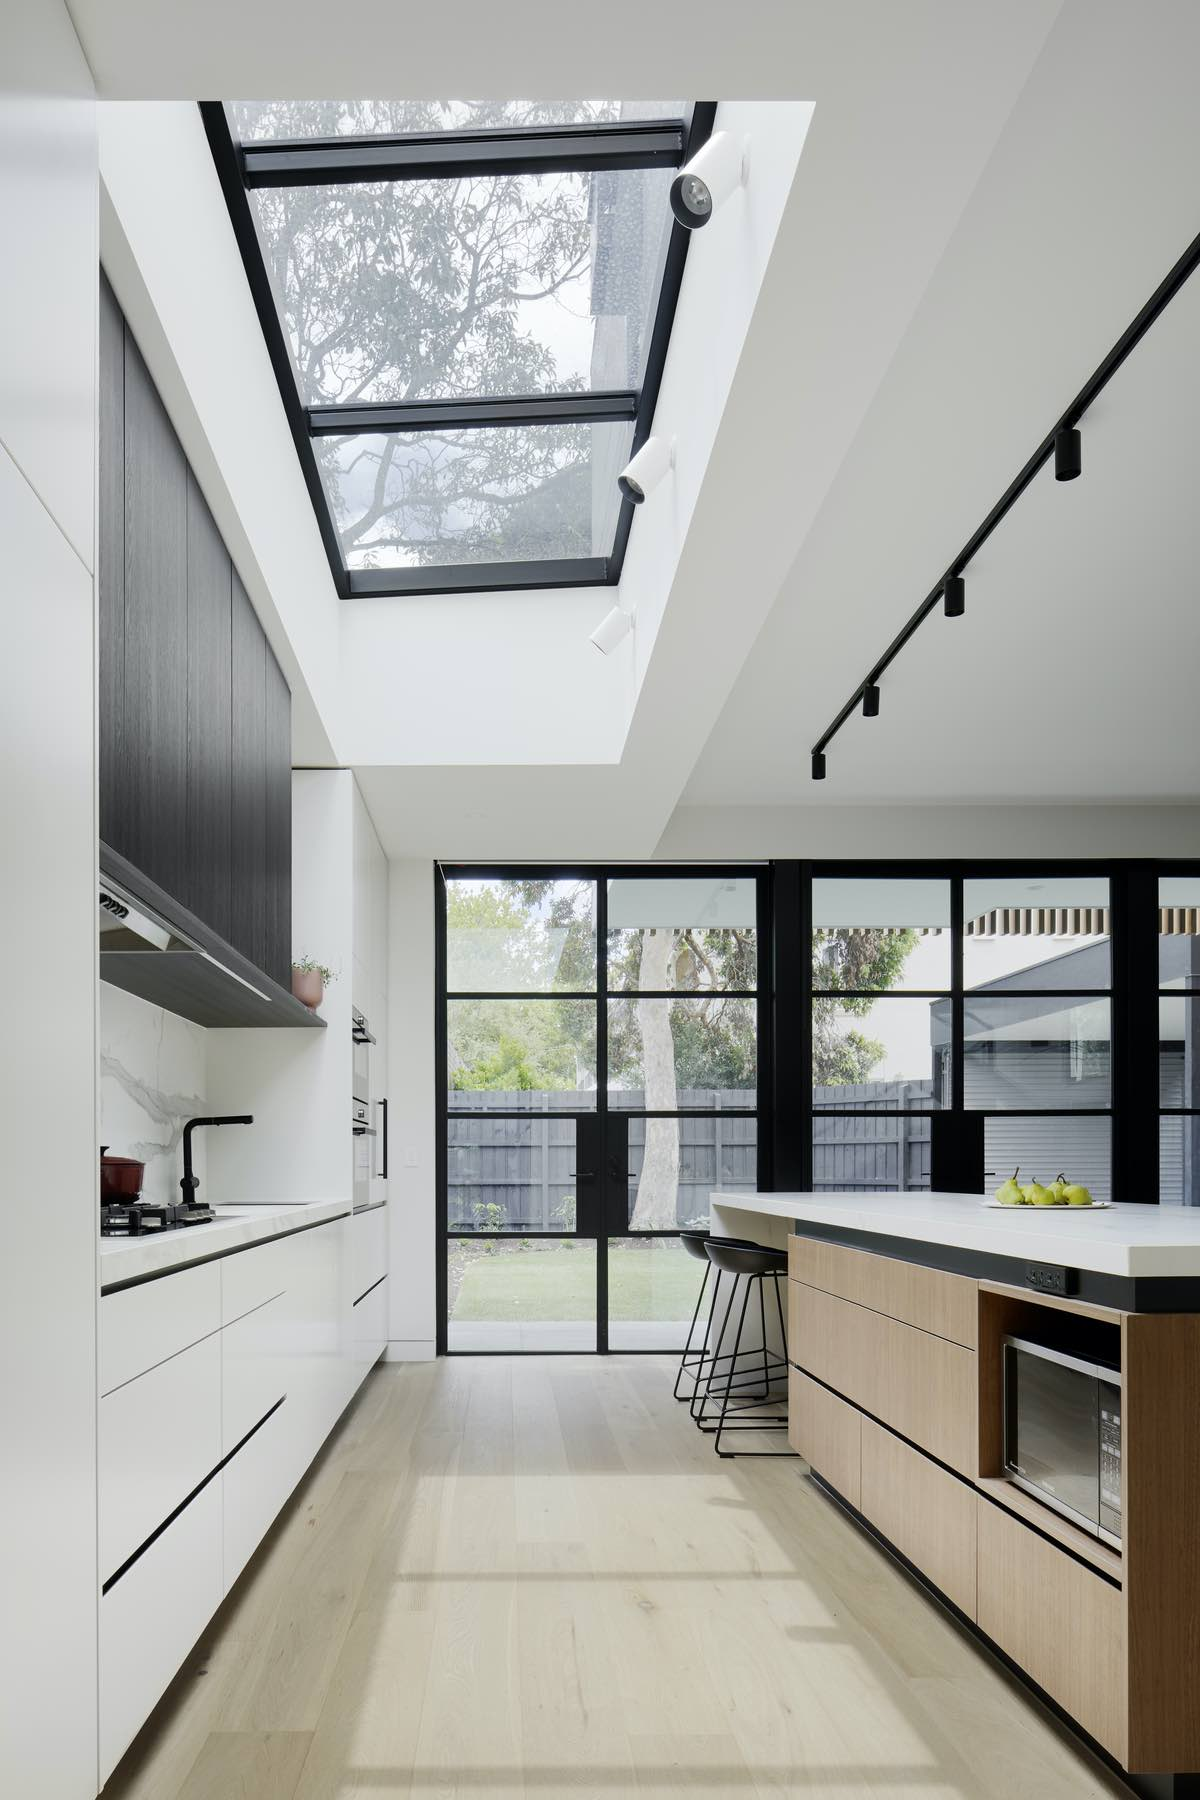 natural light entering the kitchen through skylight in the ceiling